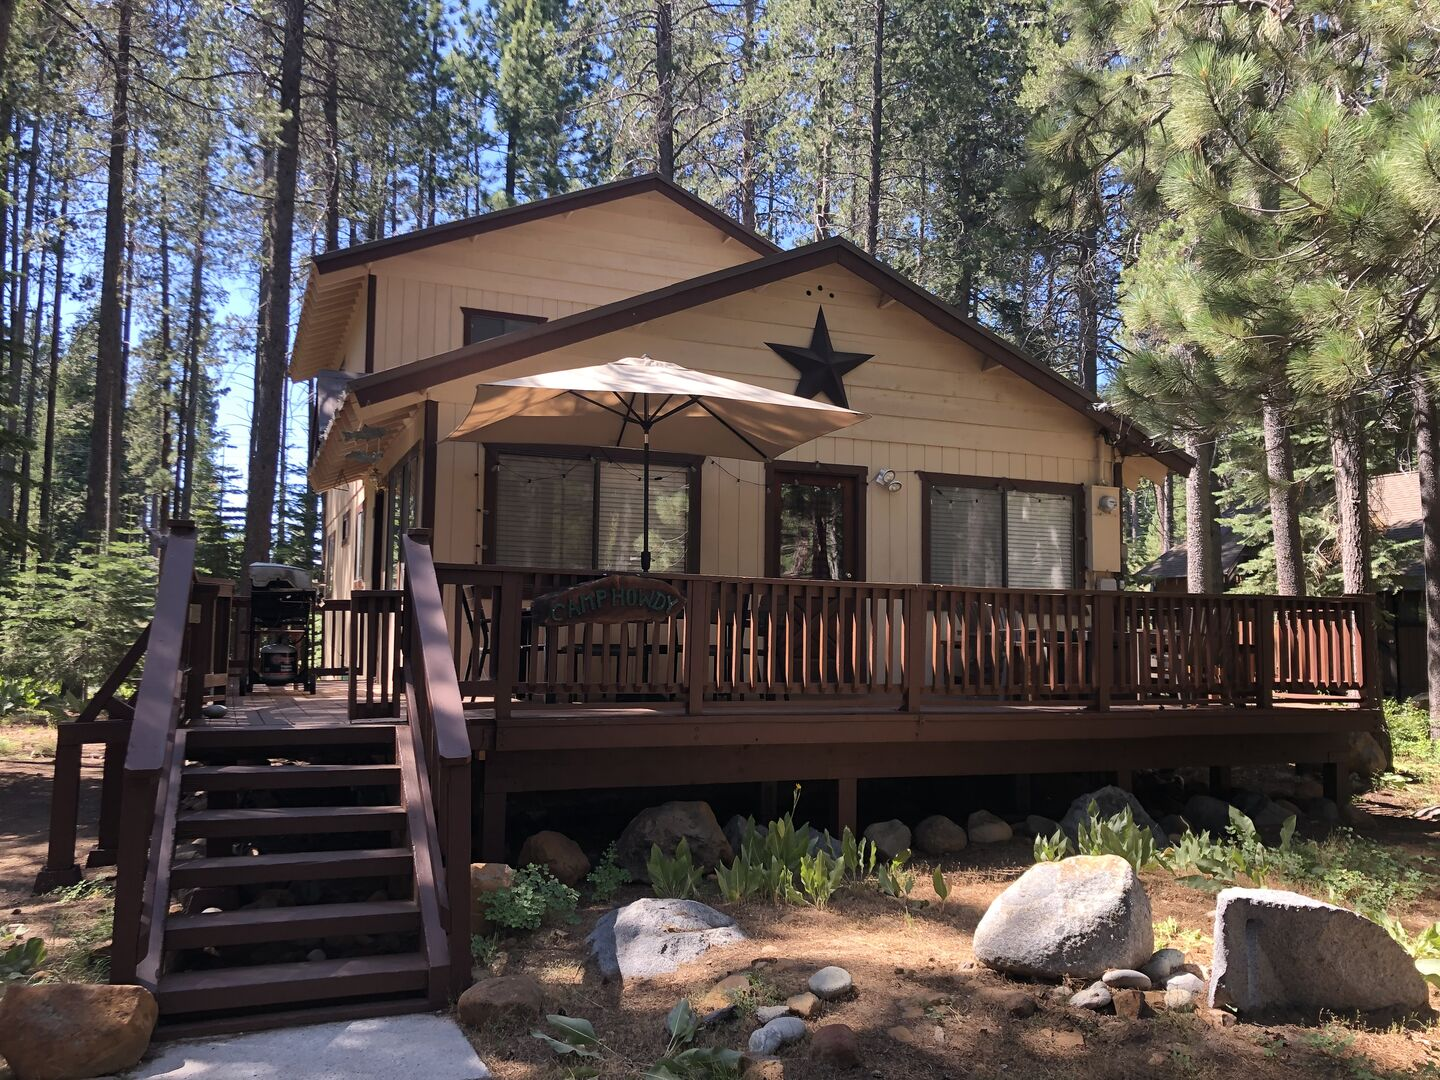 Exterior View of Camp Howdy in Tahoe